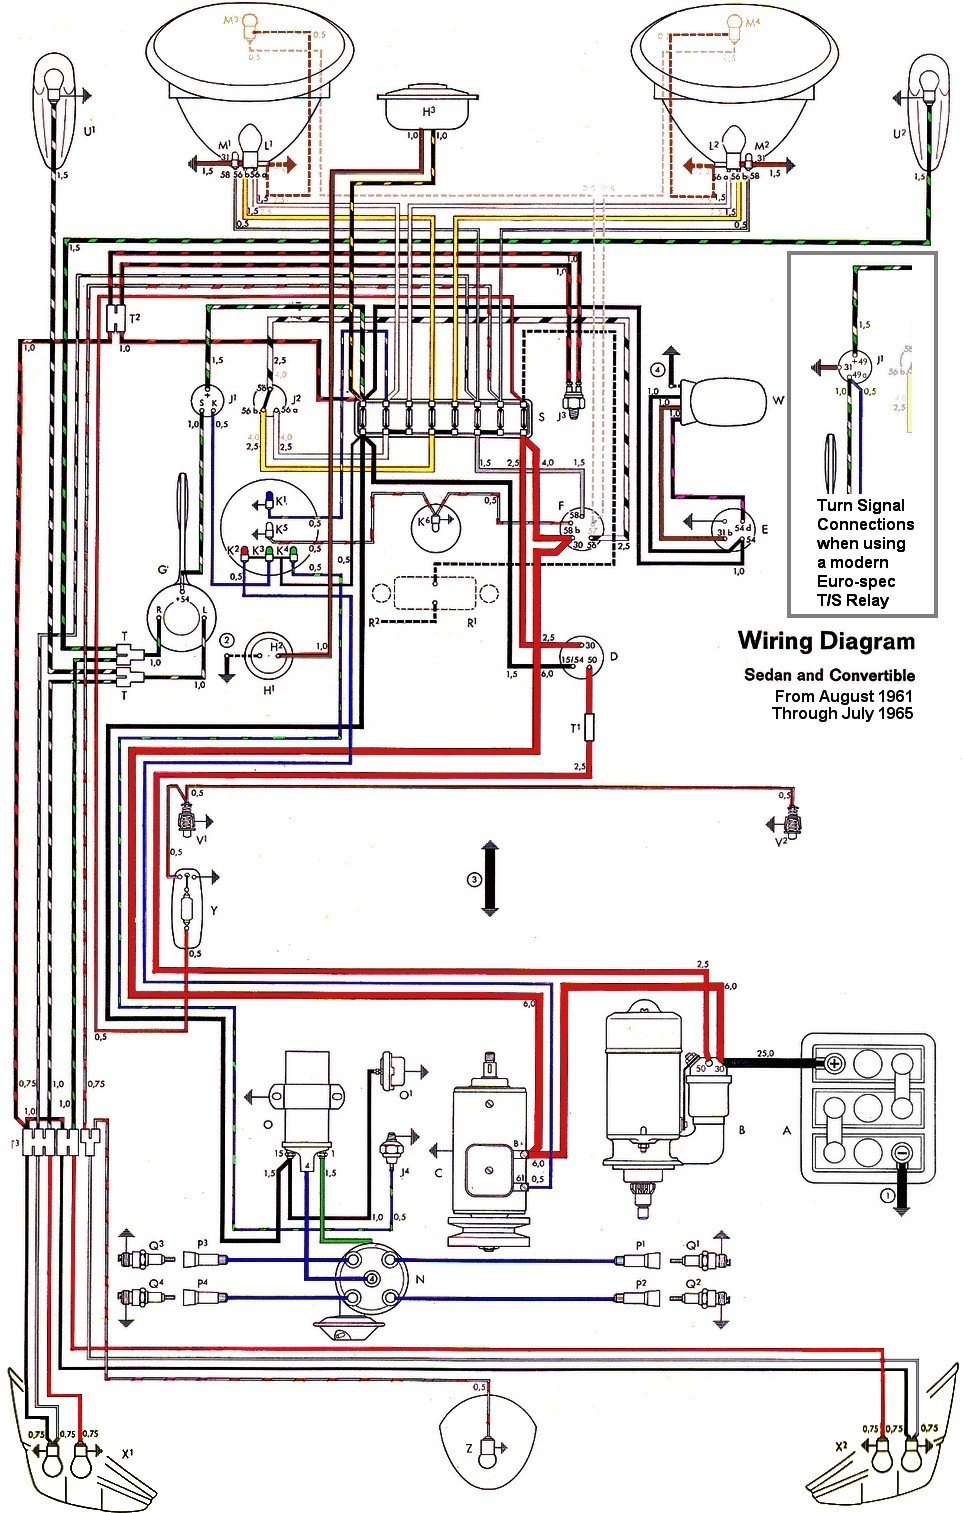 thesamba com type 1 wiring diagrams rh thesamba com 1970 vw bug brake wiring diagram 1970 vw bug wiring diagram